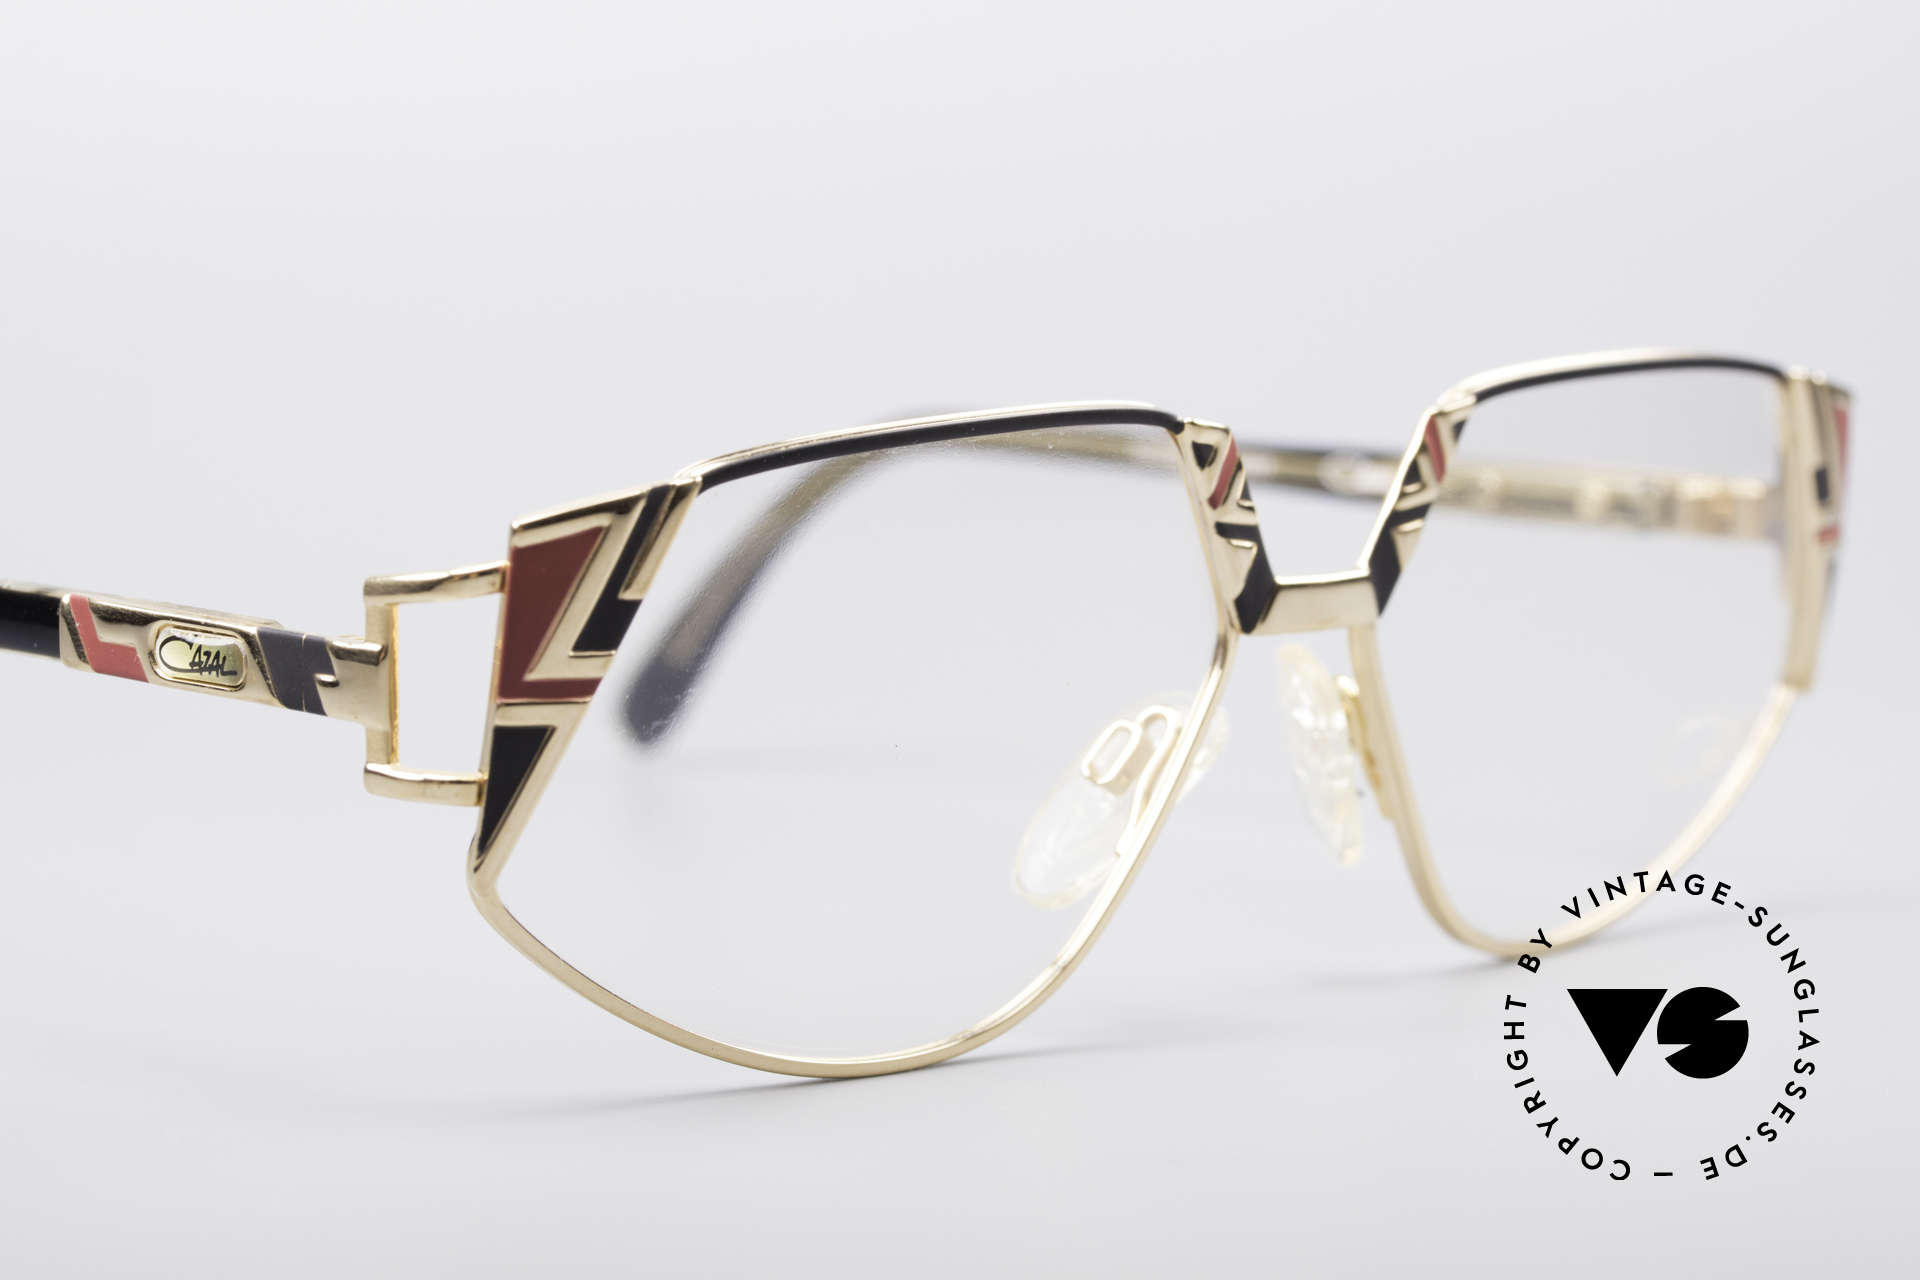 Cazal 238 Cateye Vintage Glasses, NO RETRO FRAME, but a unique old 90's ORIGINAL!, Made for Women